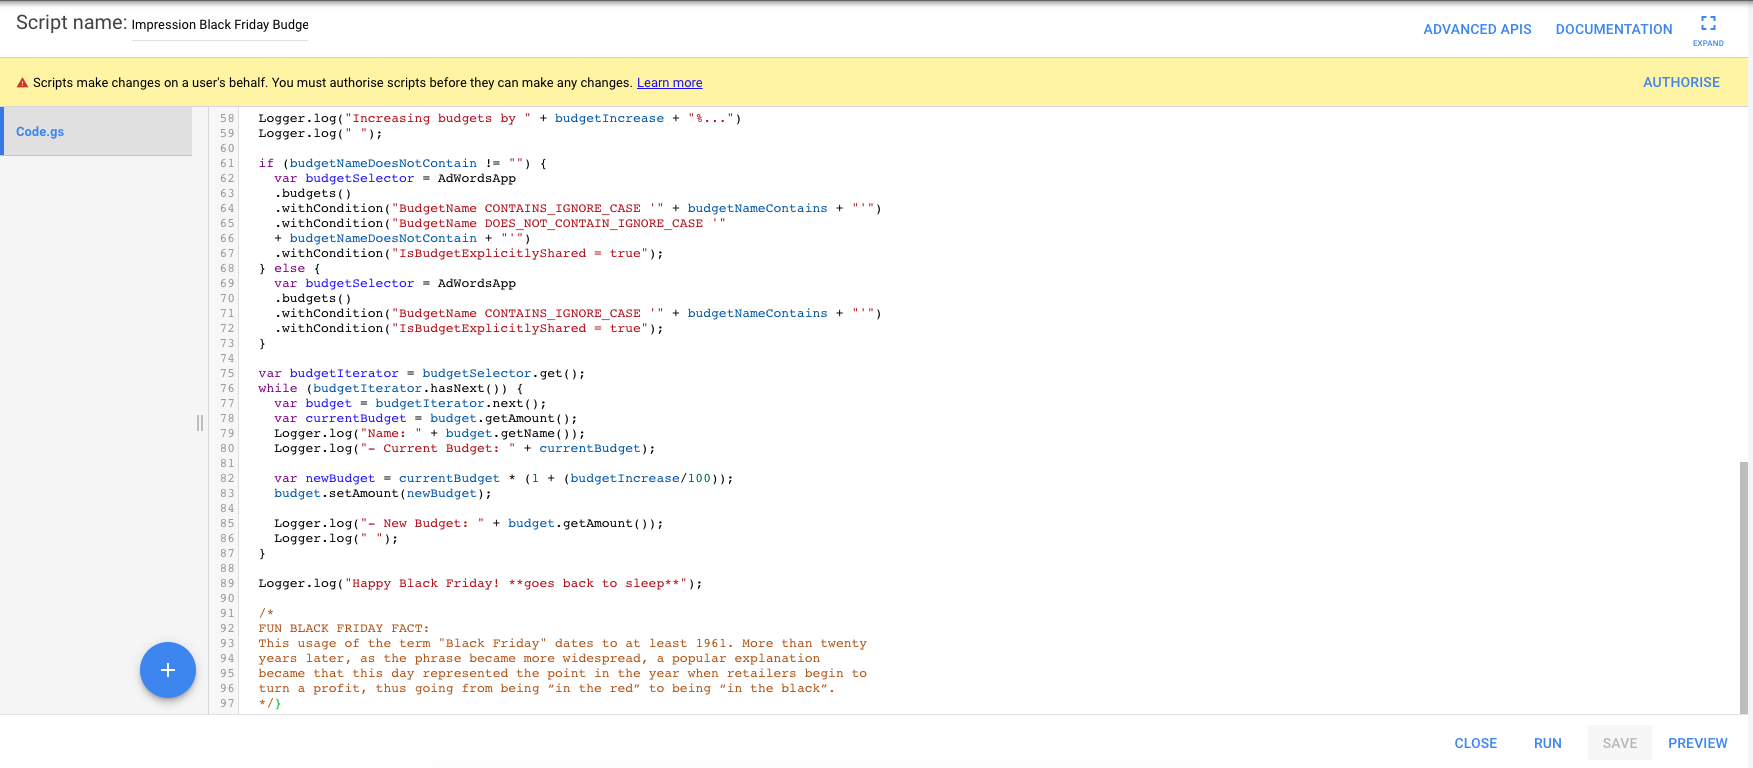 If you've put the Black Friday Budgets script in properly, it'll look something like this